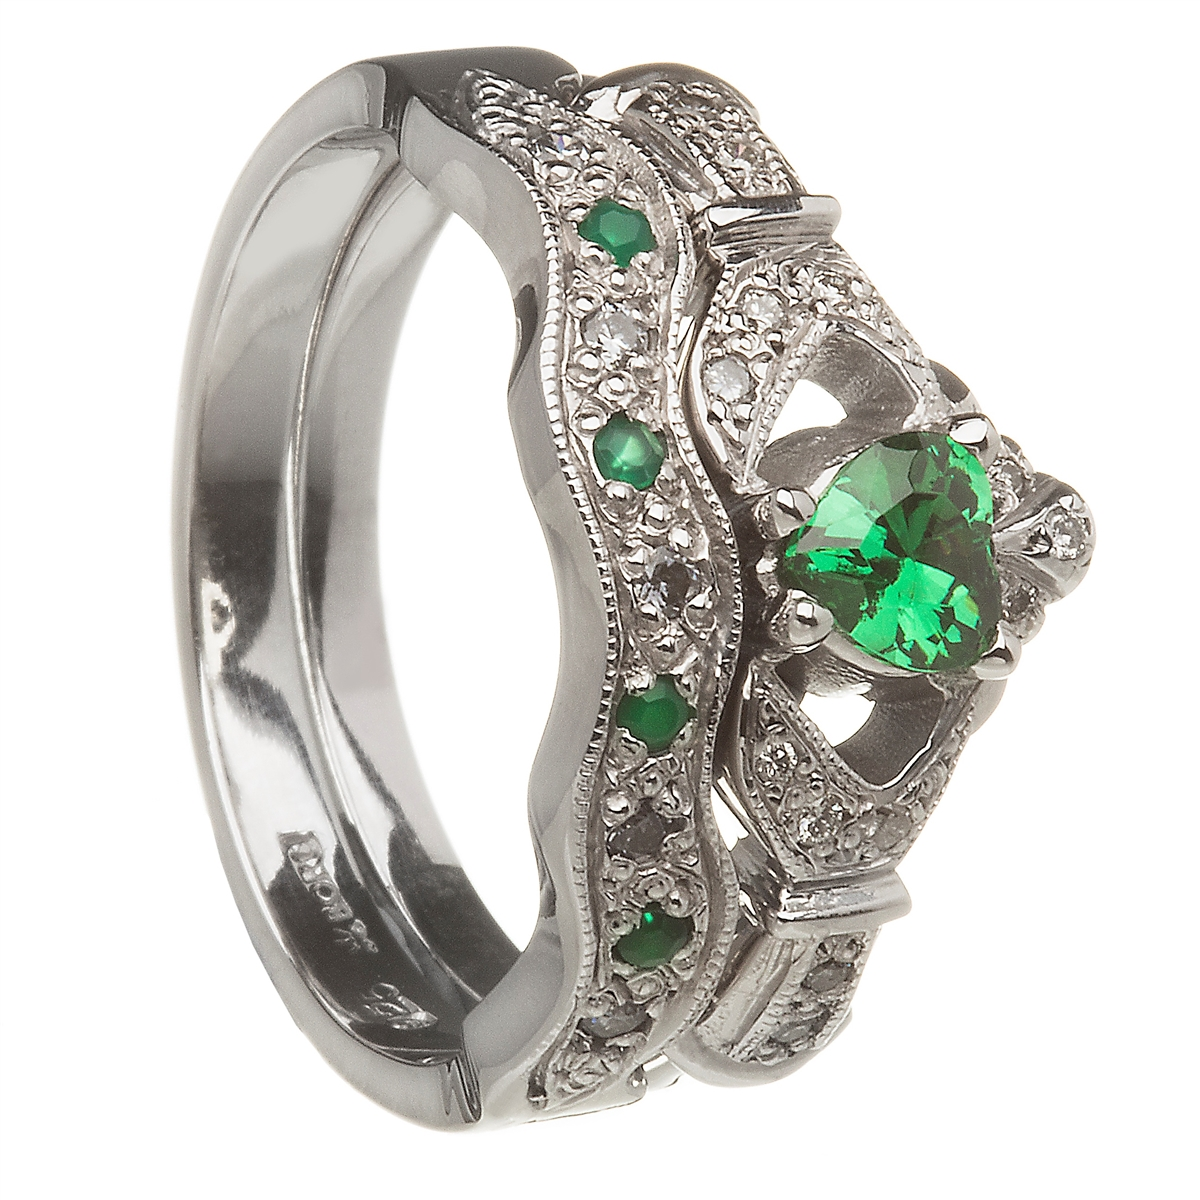 14k white gold emerald set heart claddagh ring wedding ring set - Claddagh Wedding Ring